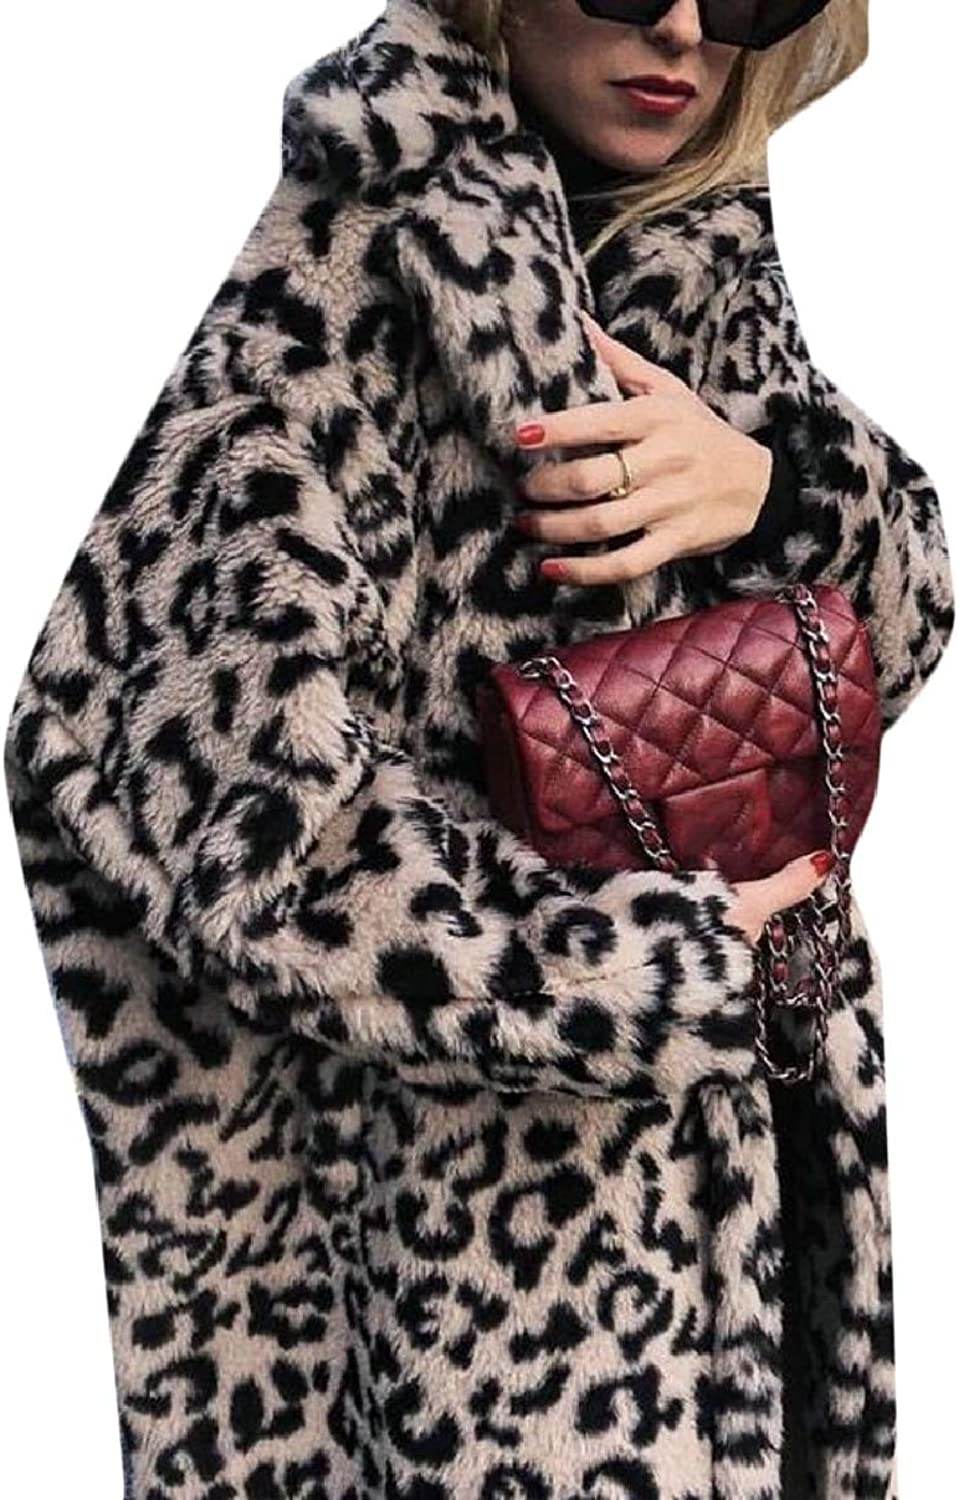 LEISHOP Womens Leopard Faux Fur Coat Long Sleeve Parka Jacket Outwear